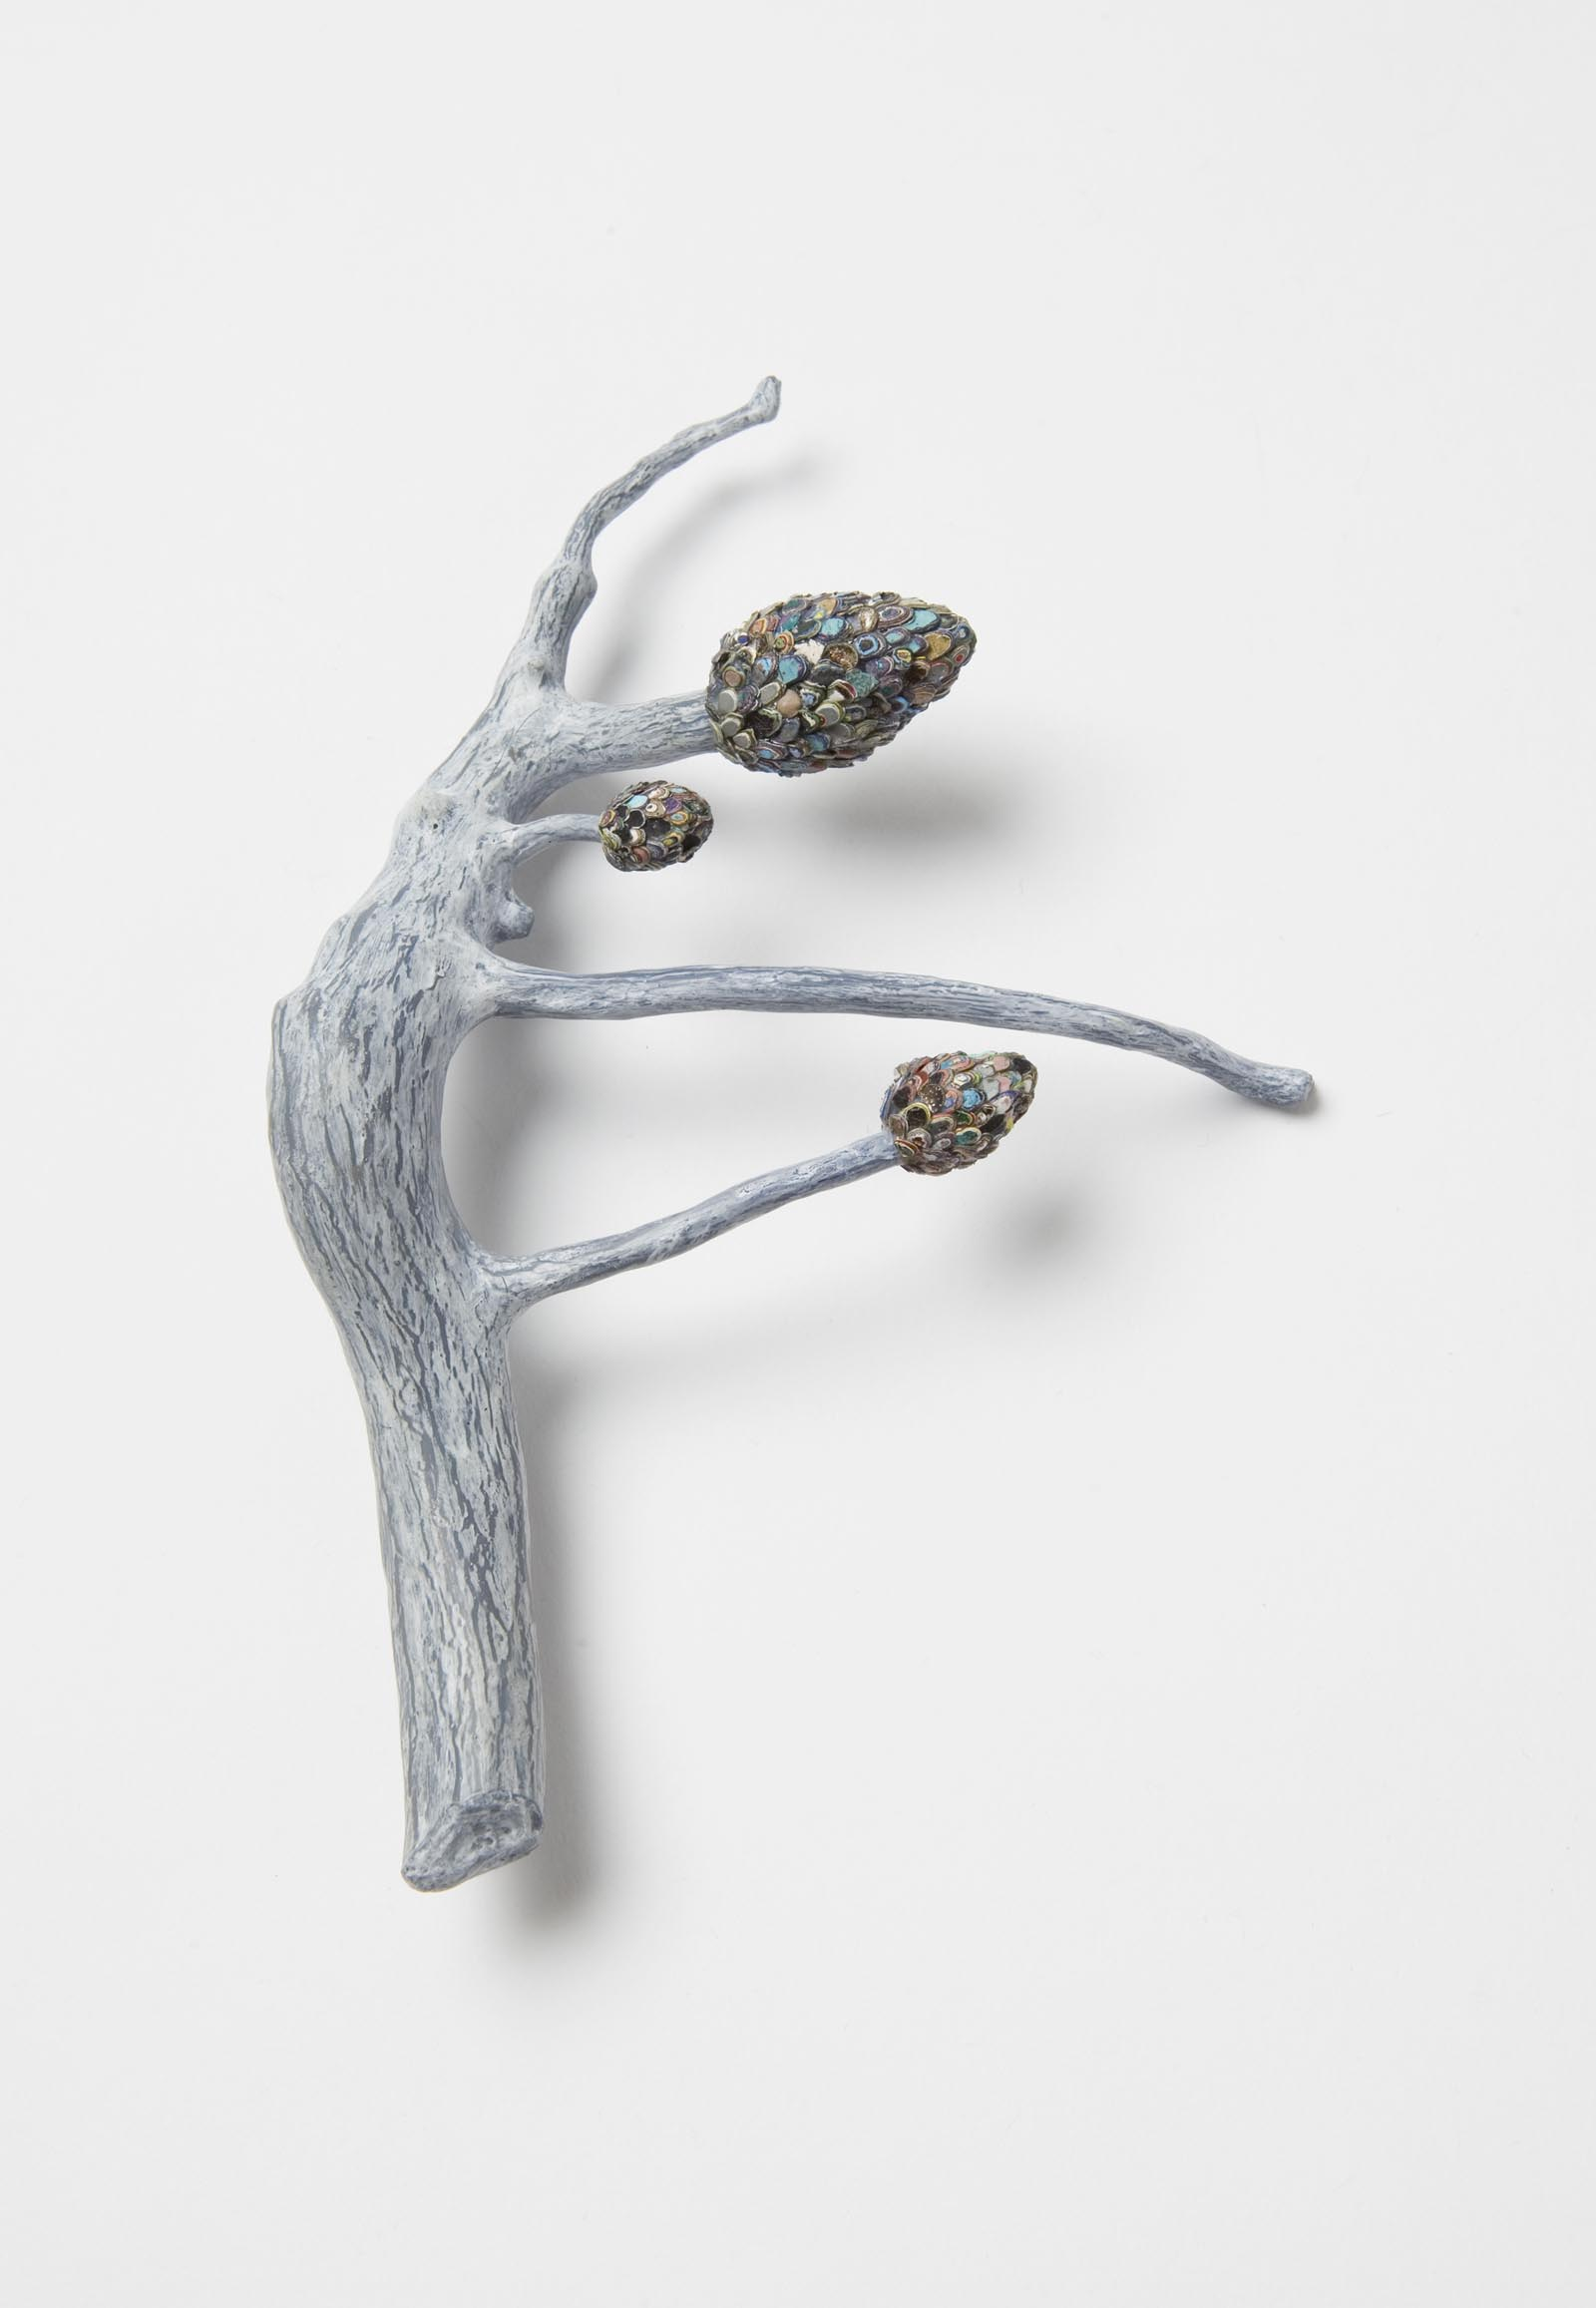 """Raduga Buds 3"" I Brooch, 2014 I Wood, graffiti, silver, stainless steel, paint I Photo: Mirei Takeuchi"